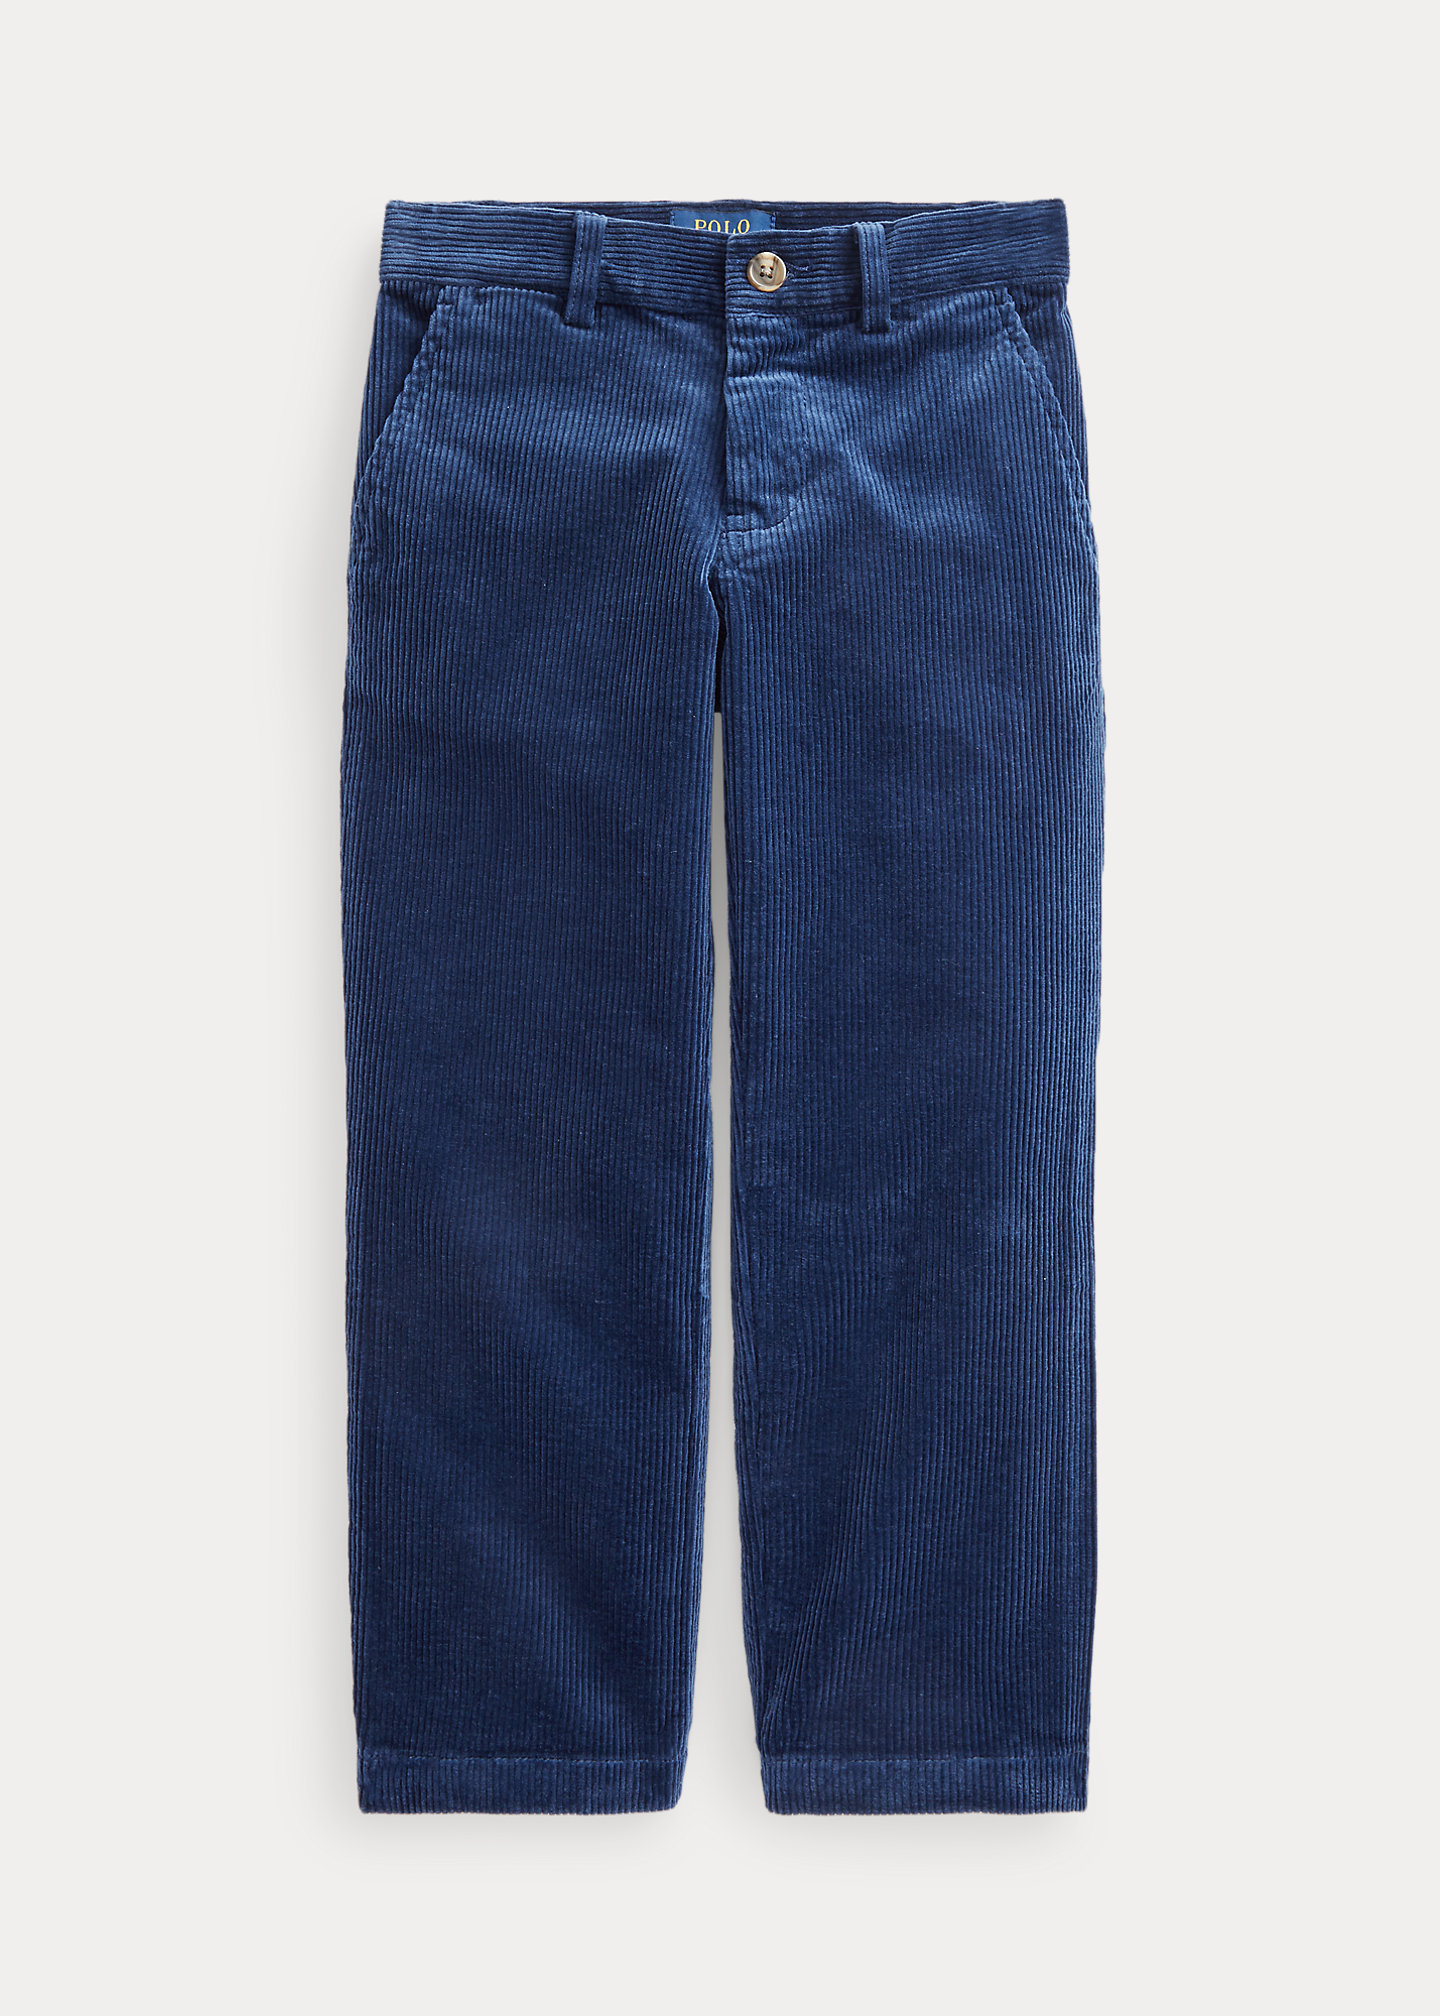 Polo Ralph Lauren Straight Fit Stretch Corduroy Pant